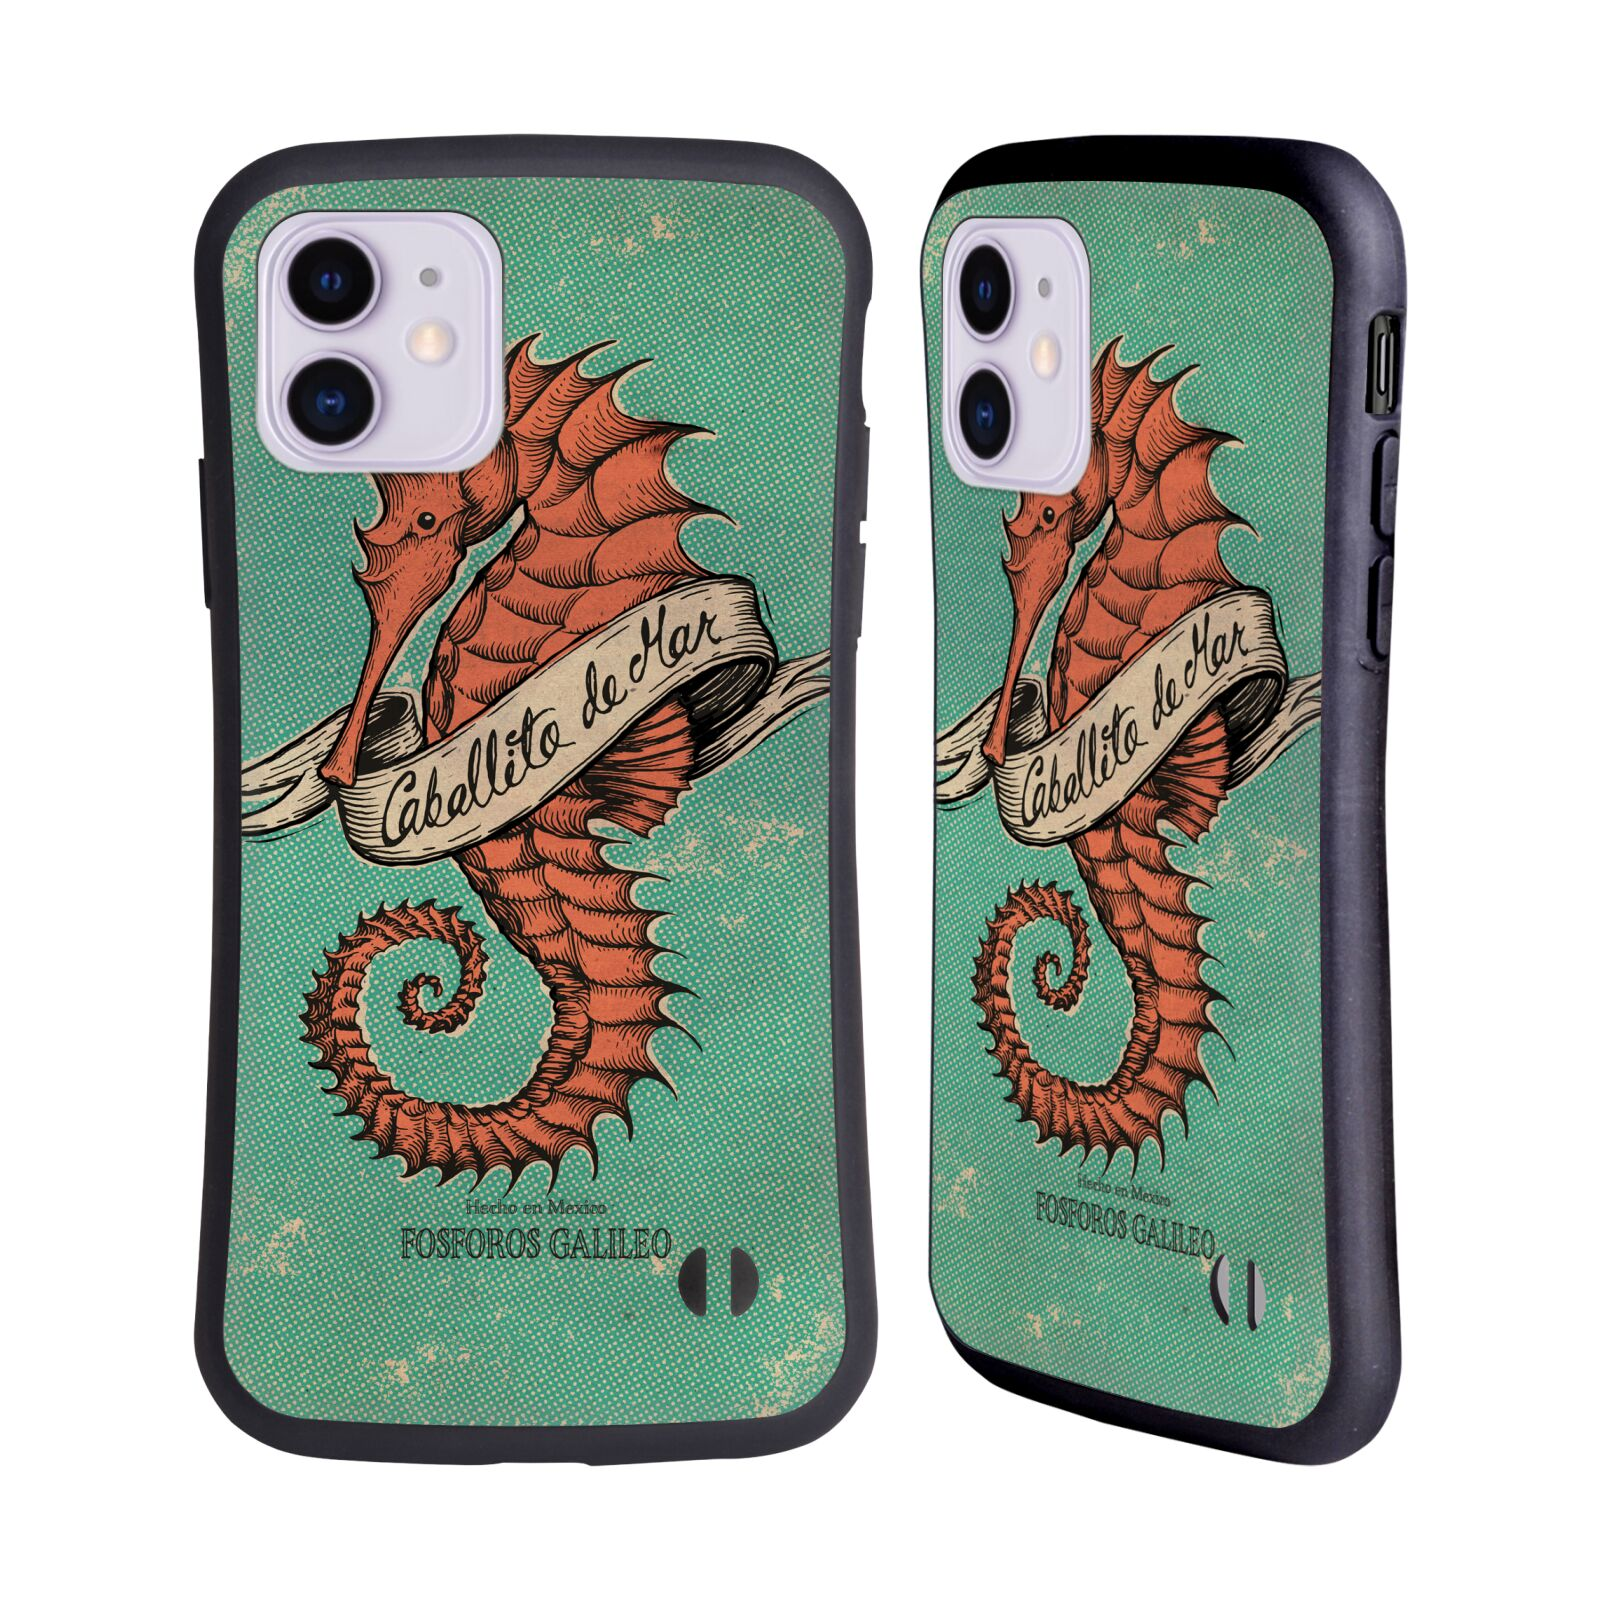 Official Fosforos Galileo Diseños Caballito De Mar Hybrid Case for Apple iPhone 11